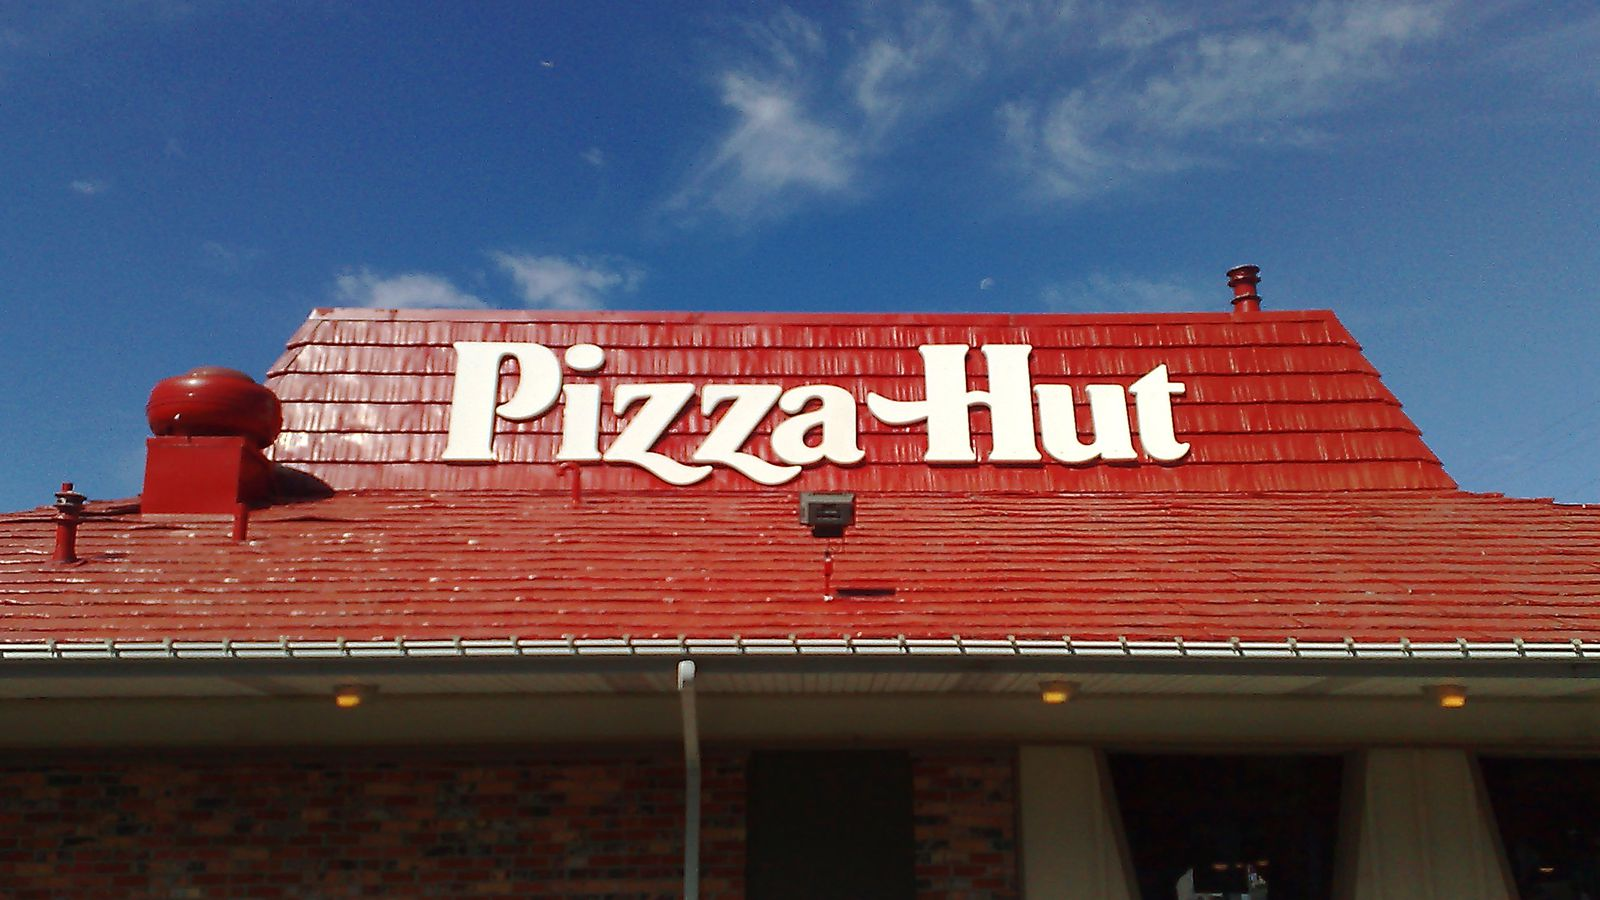 pizza hut pan pizza 3 essay Plano, tx 75024 pizza hut has over 200,000 employees worldwide in 1980, pan pizza was introduced in 1972, 1000 restaurants are open throughout the usa the first pizza hut looked liked a hut, so that's how pizza hut got its' name.